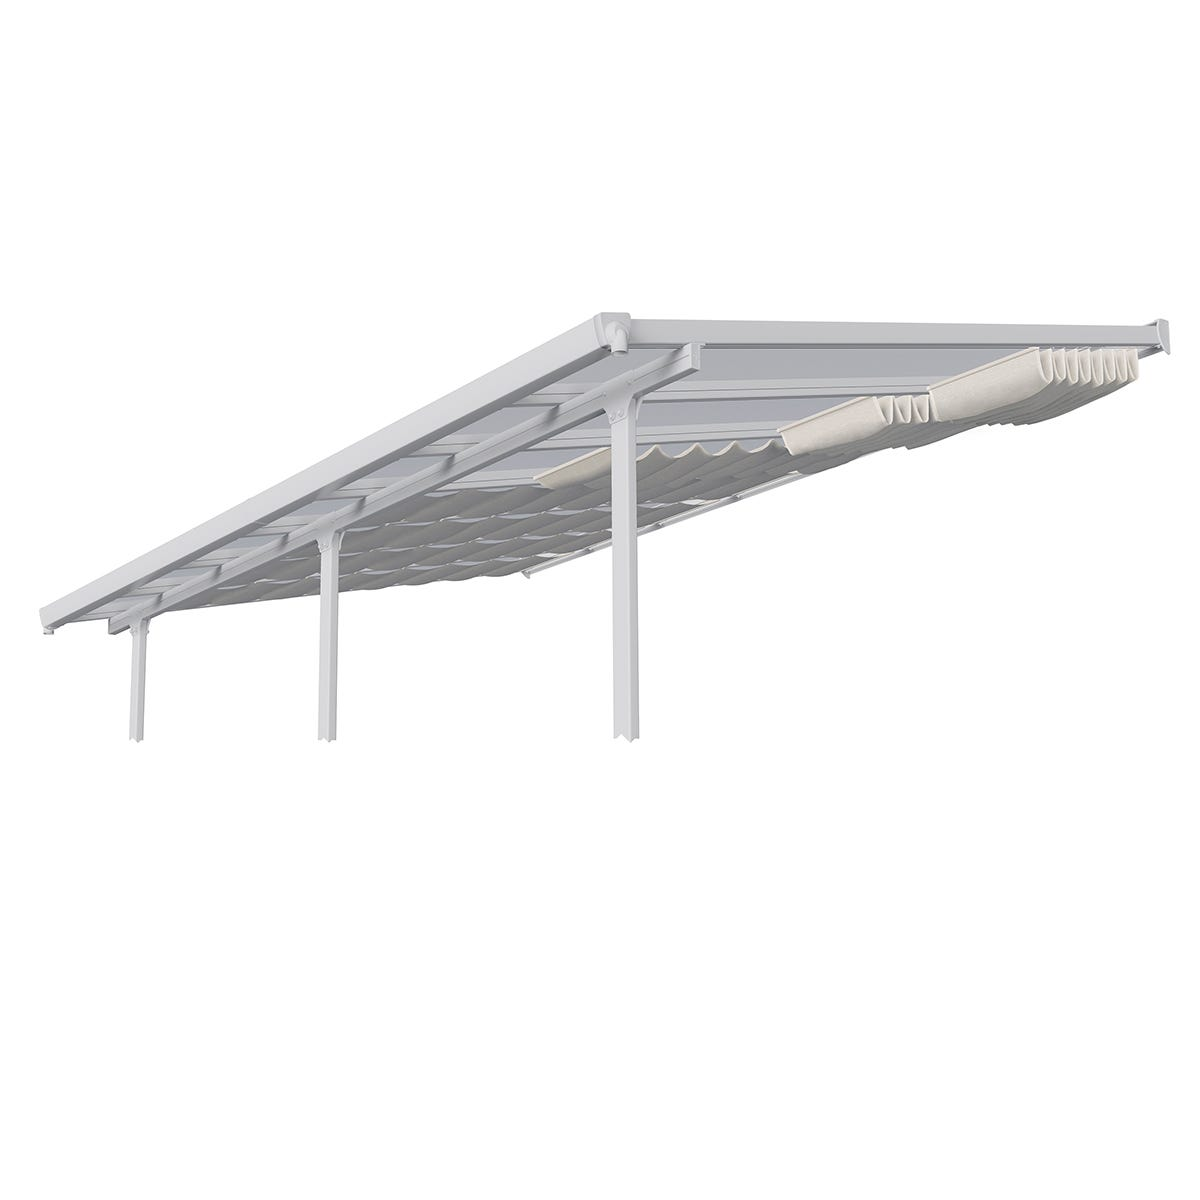 Palram - Canopia Patio Cover Roof Blinds 3m x 3.05m - White